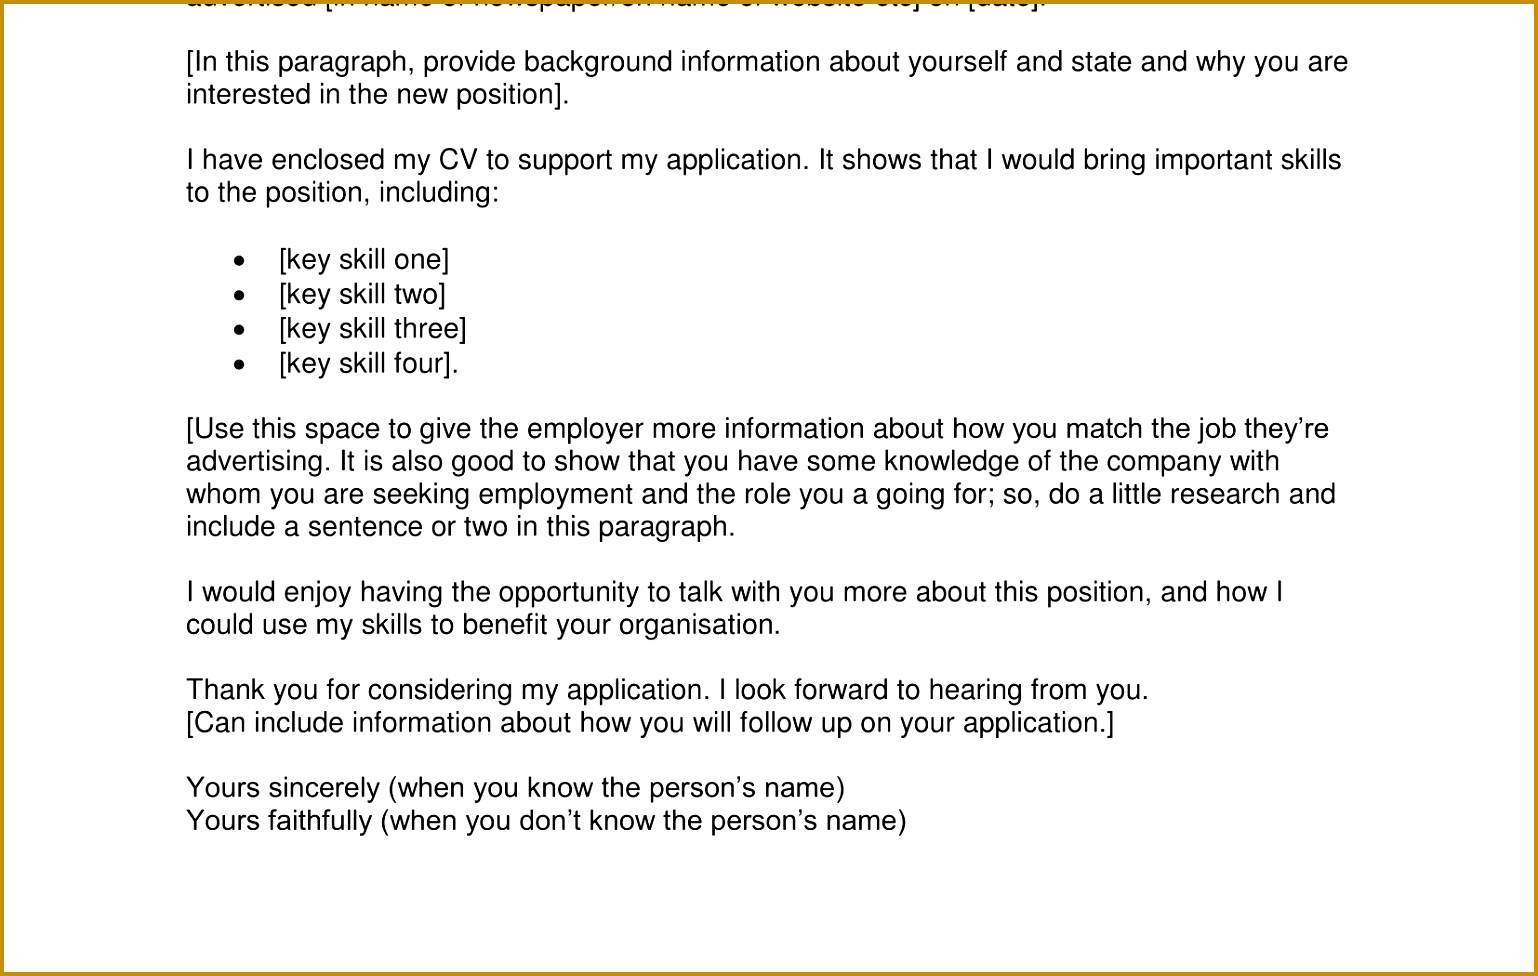 Write Covering Letter for Job Unique Importance Cover Letter and Resumeod Structure Job Application 1538976